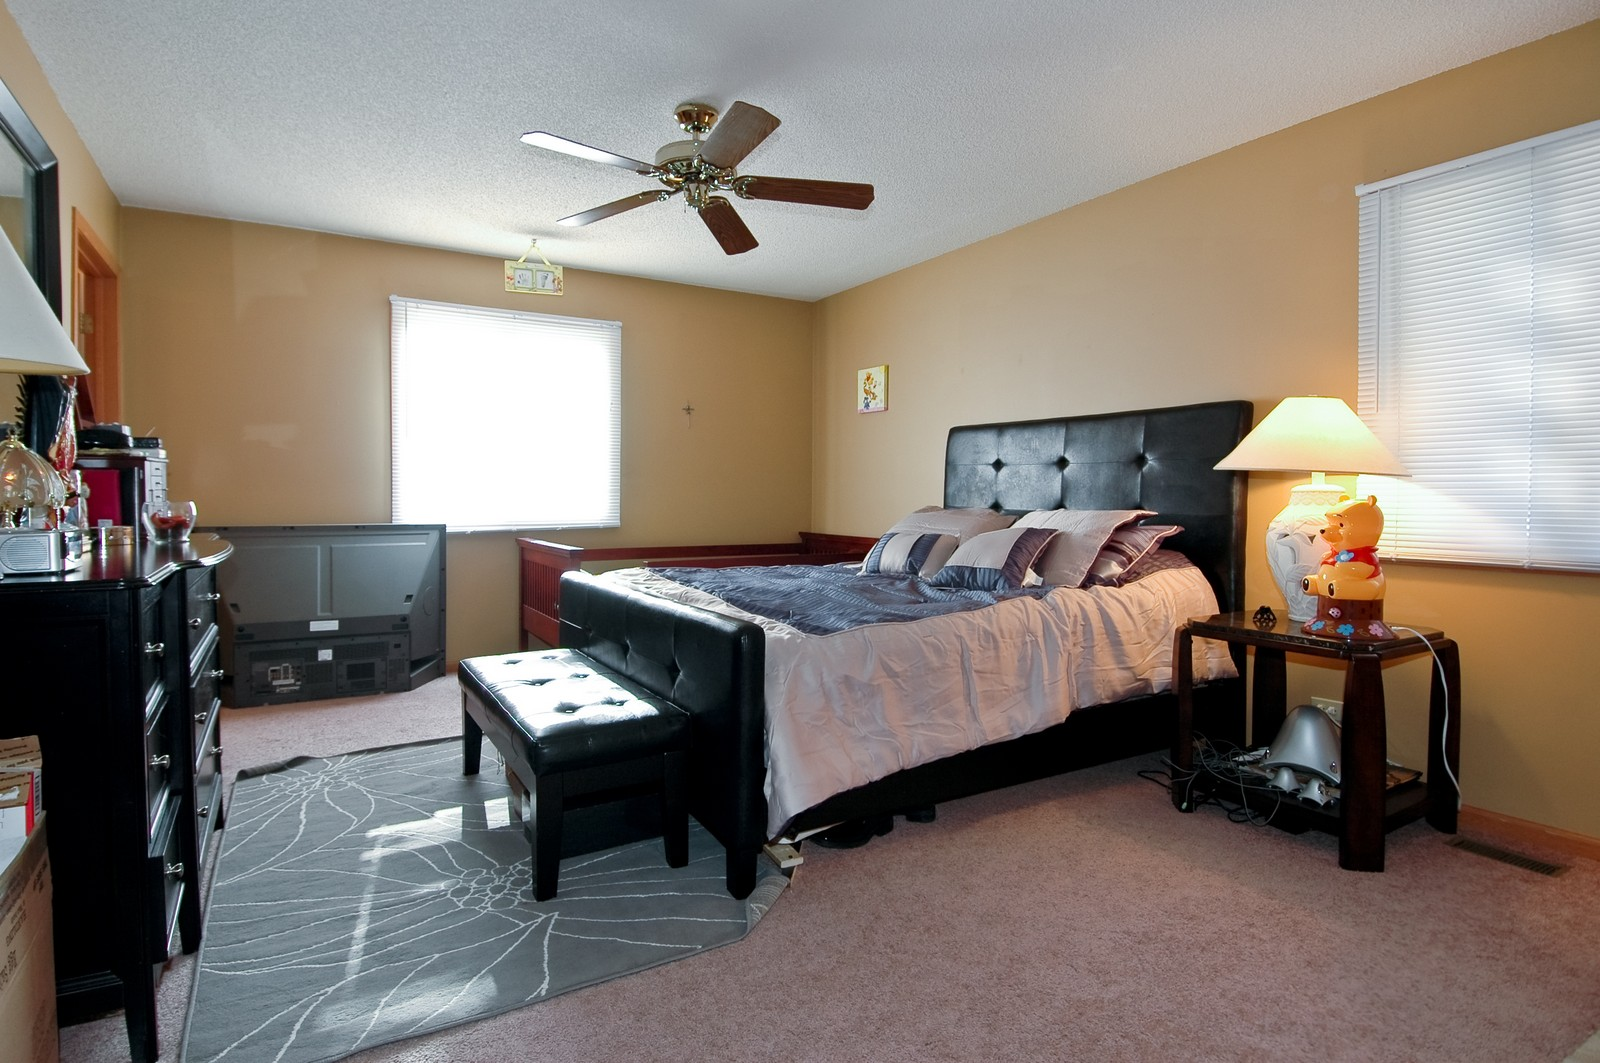 Real Estate Photography - 400 West Wood, Crystal Lake, IL, 60014 - Master Bedroom